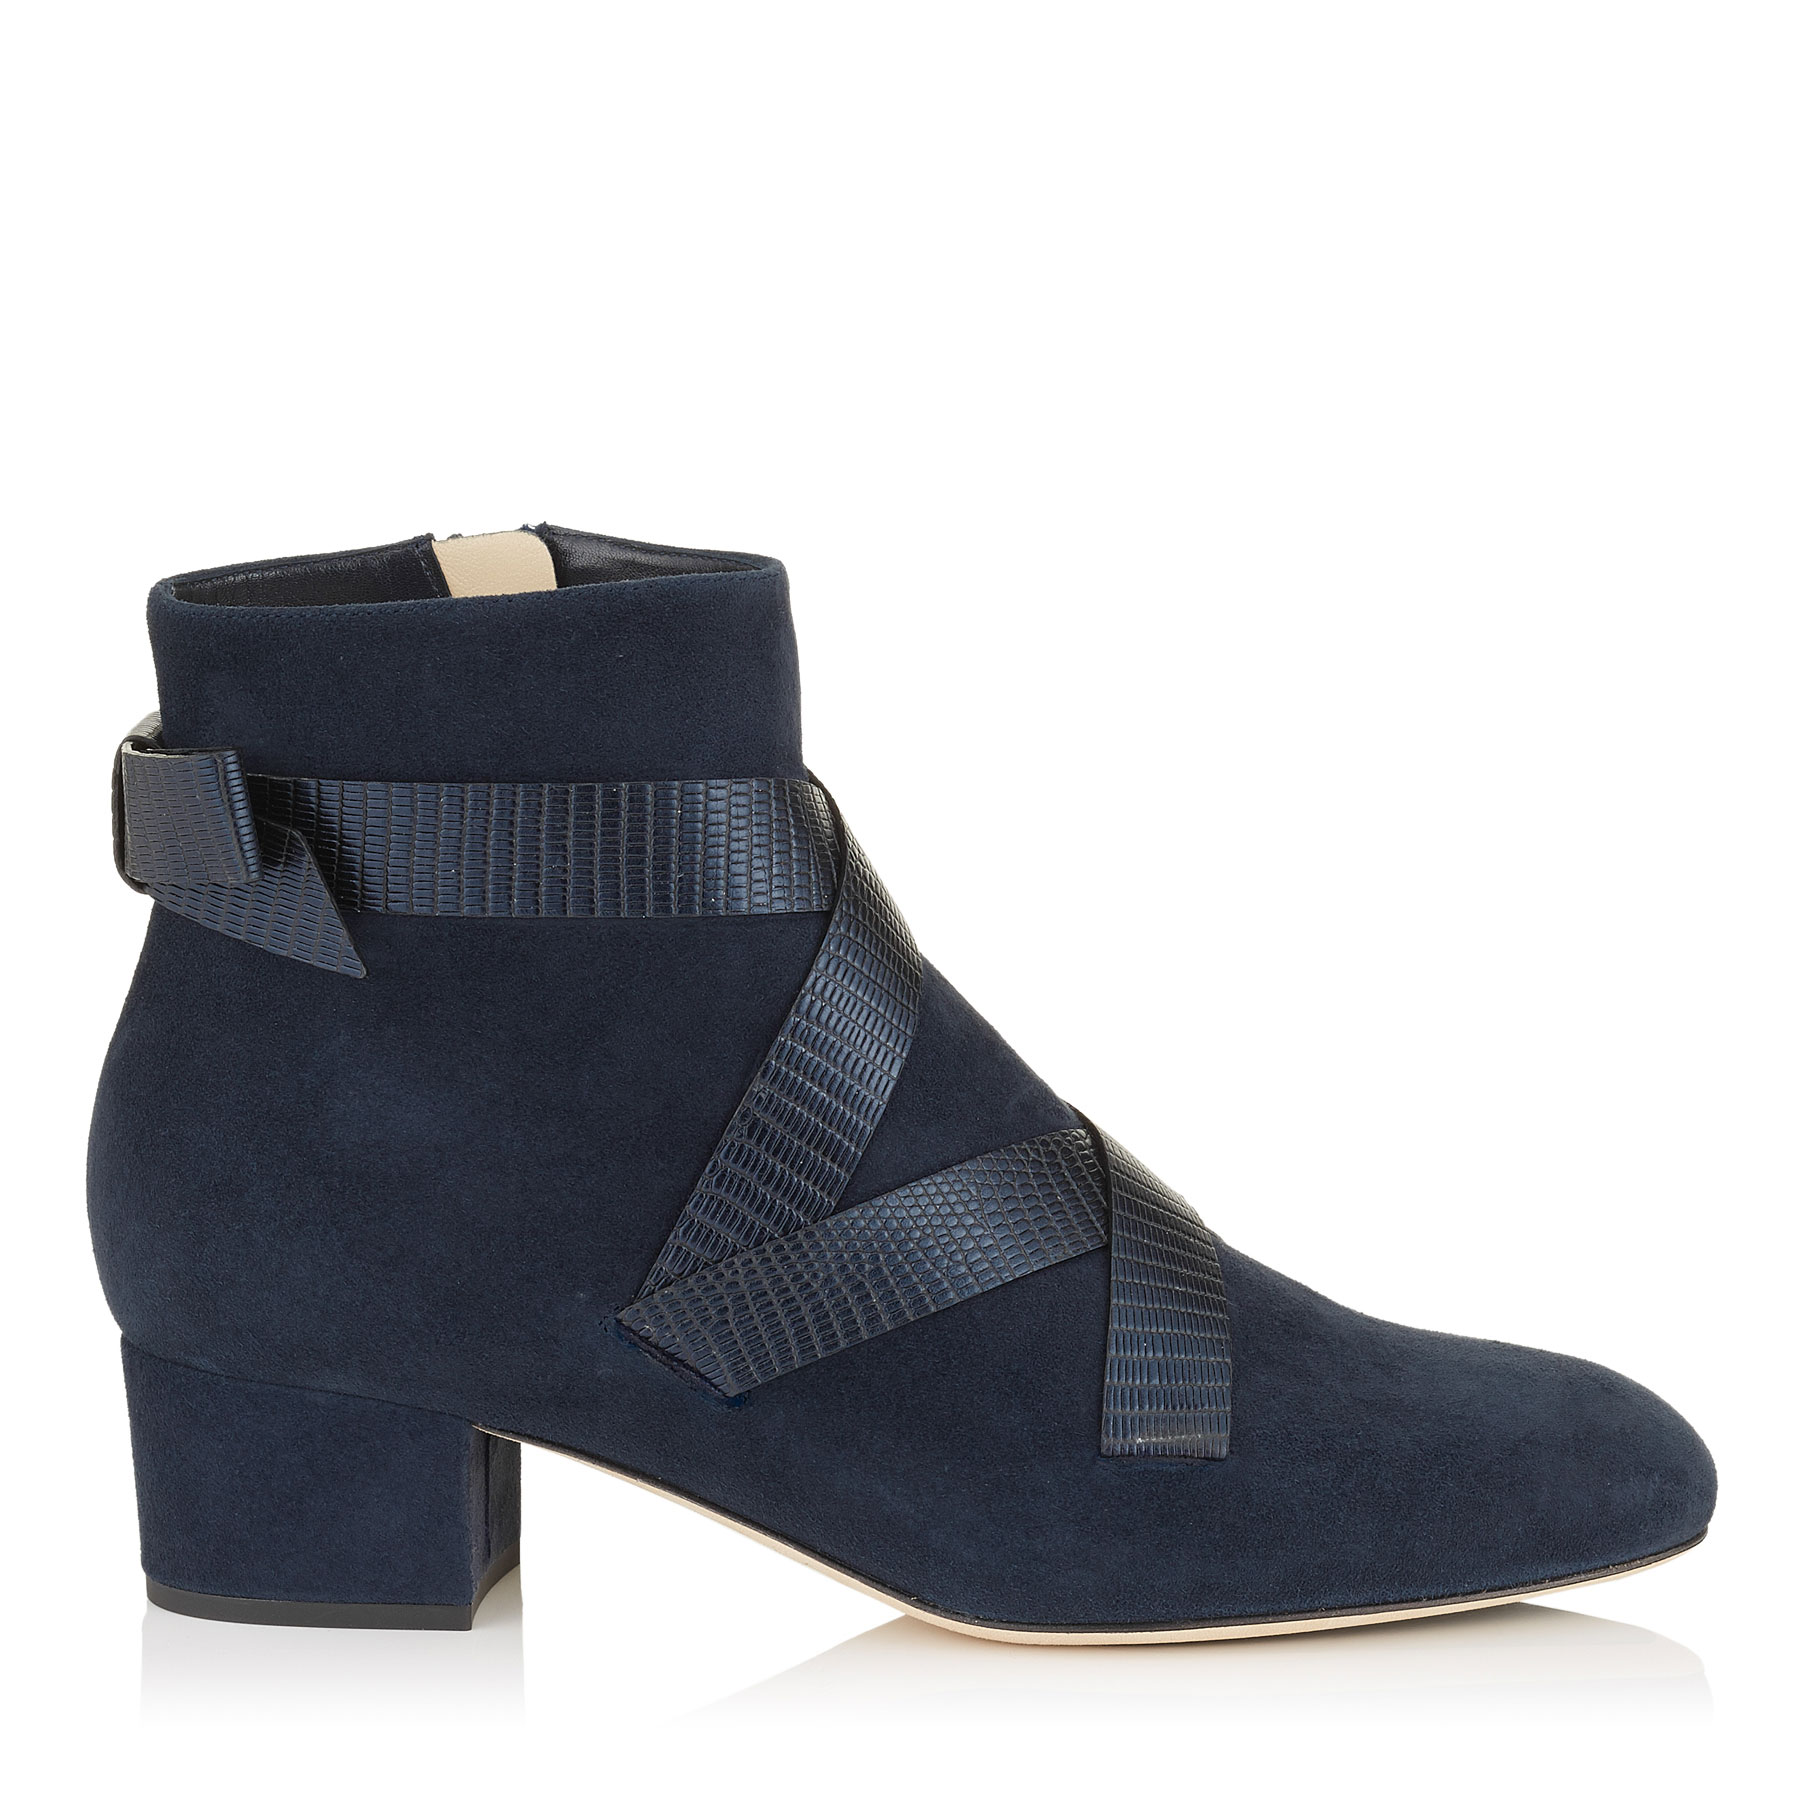 HEAT 45 Navy Suede and Metallic Printed Leather Ankle Boots